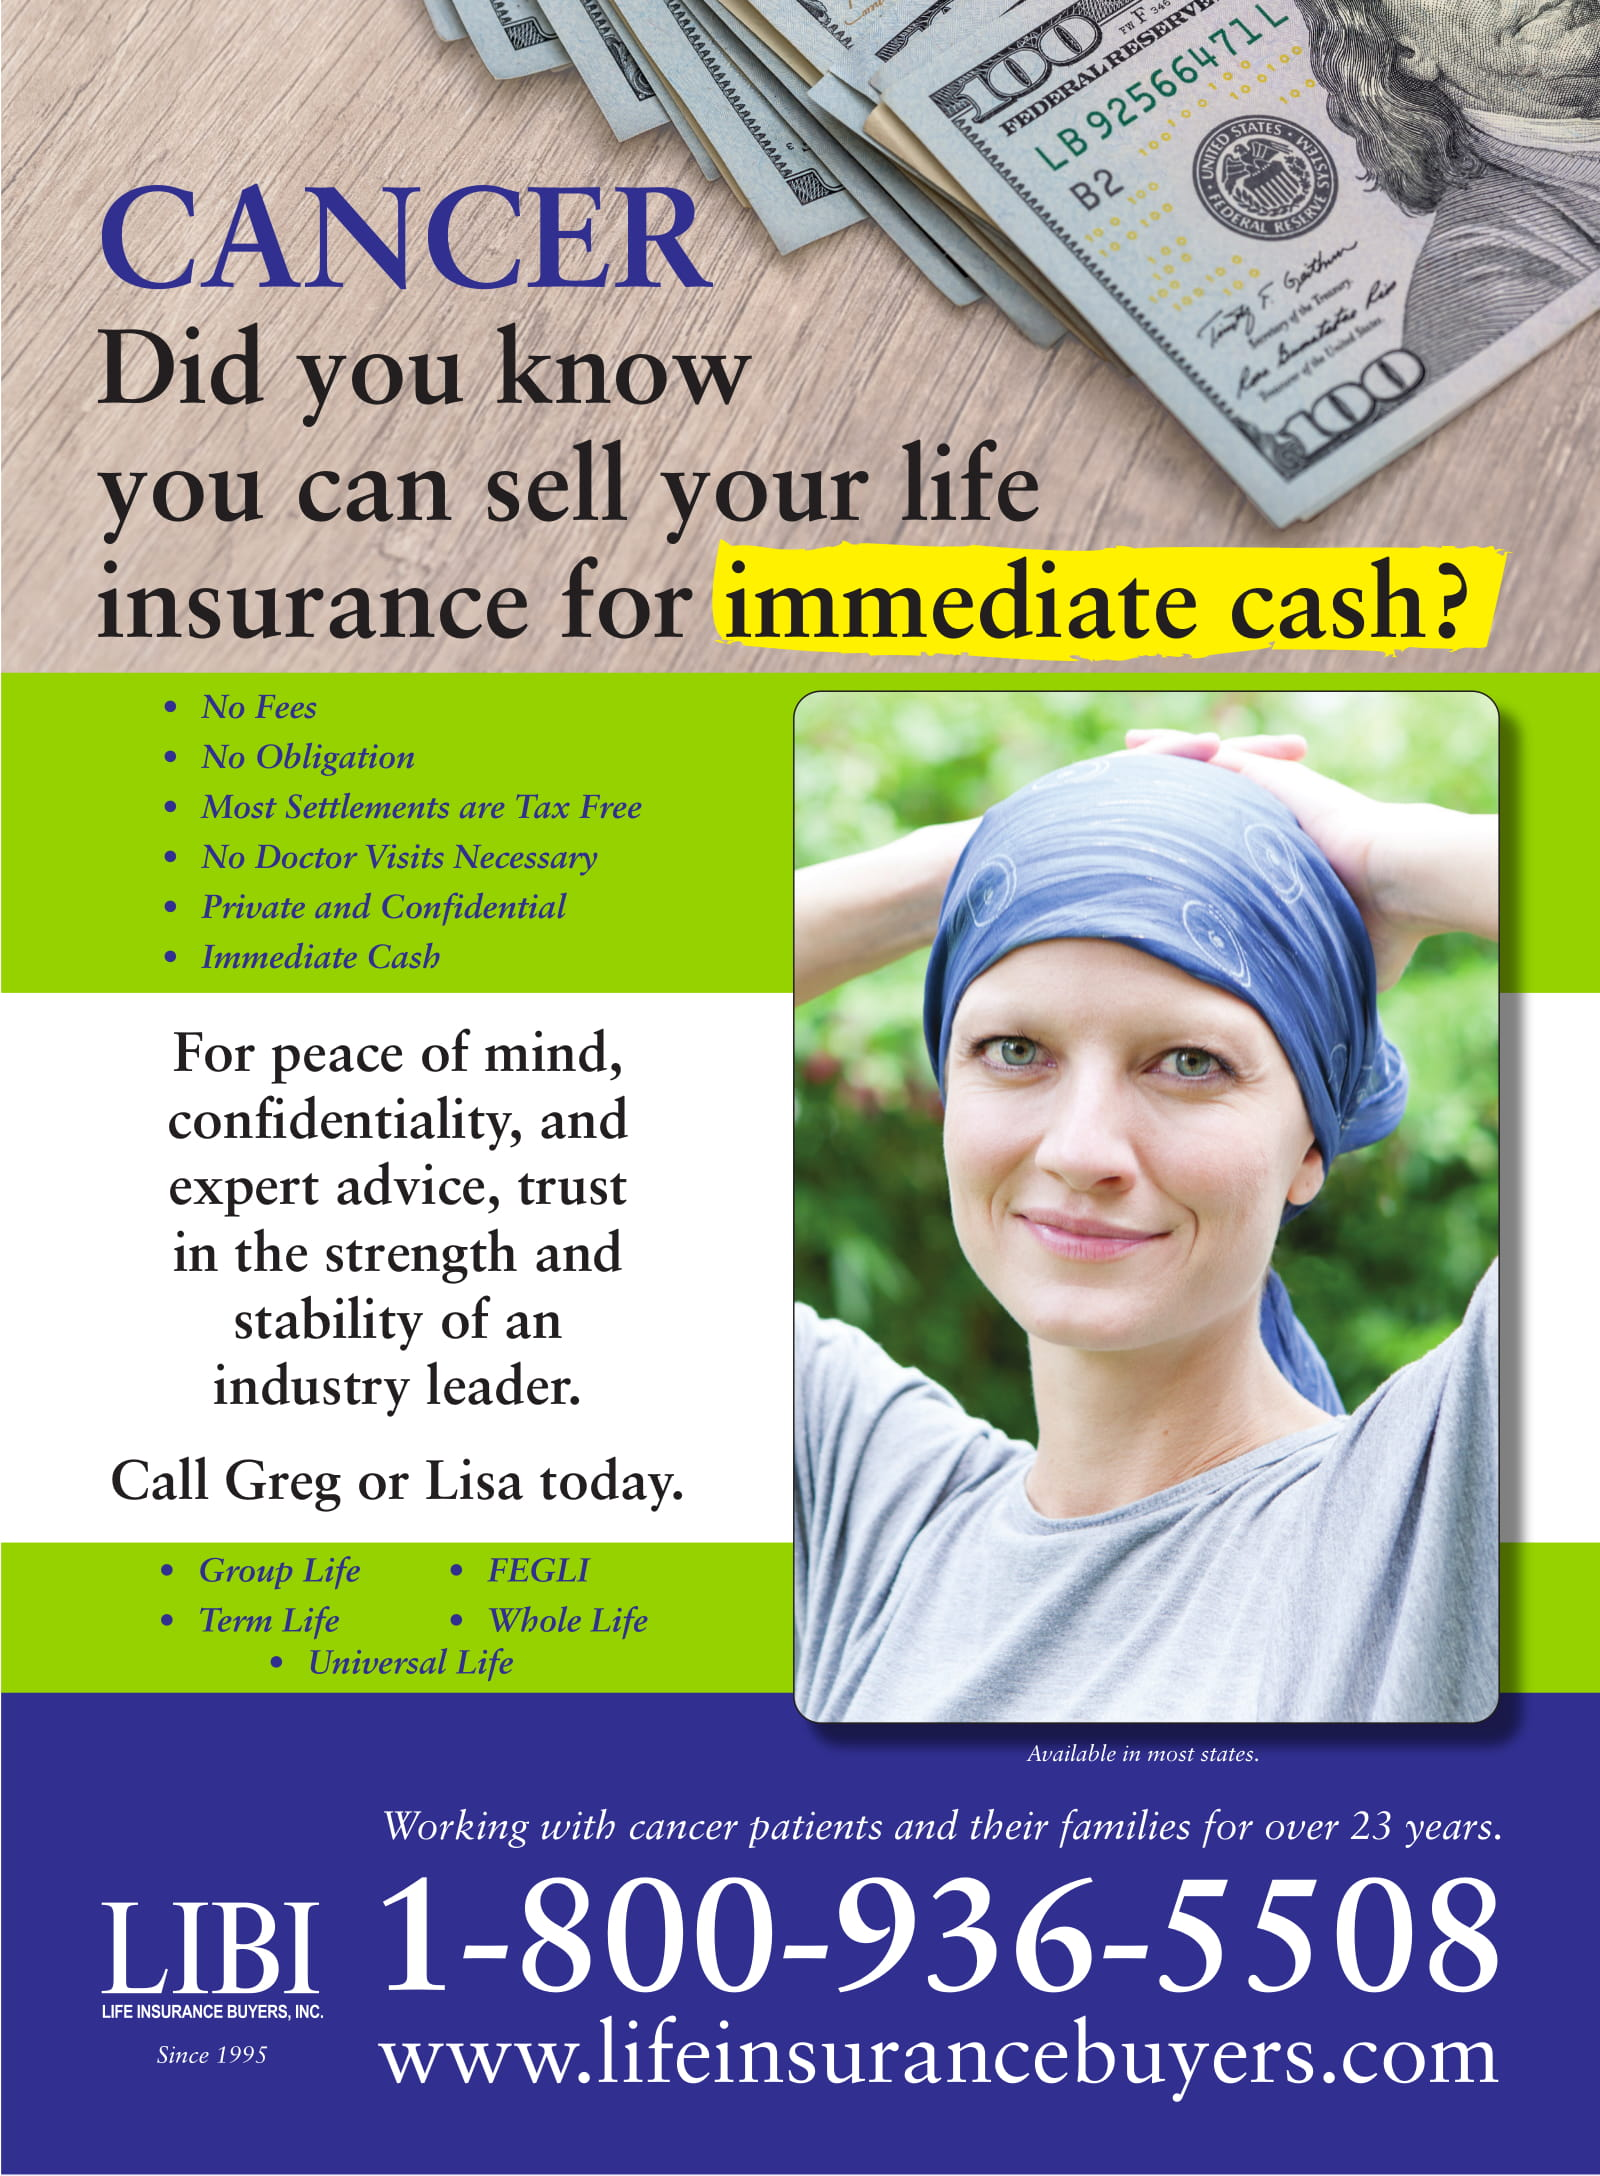 How to Fund Cancer Treatment